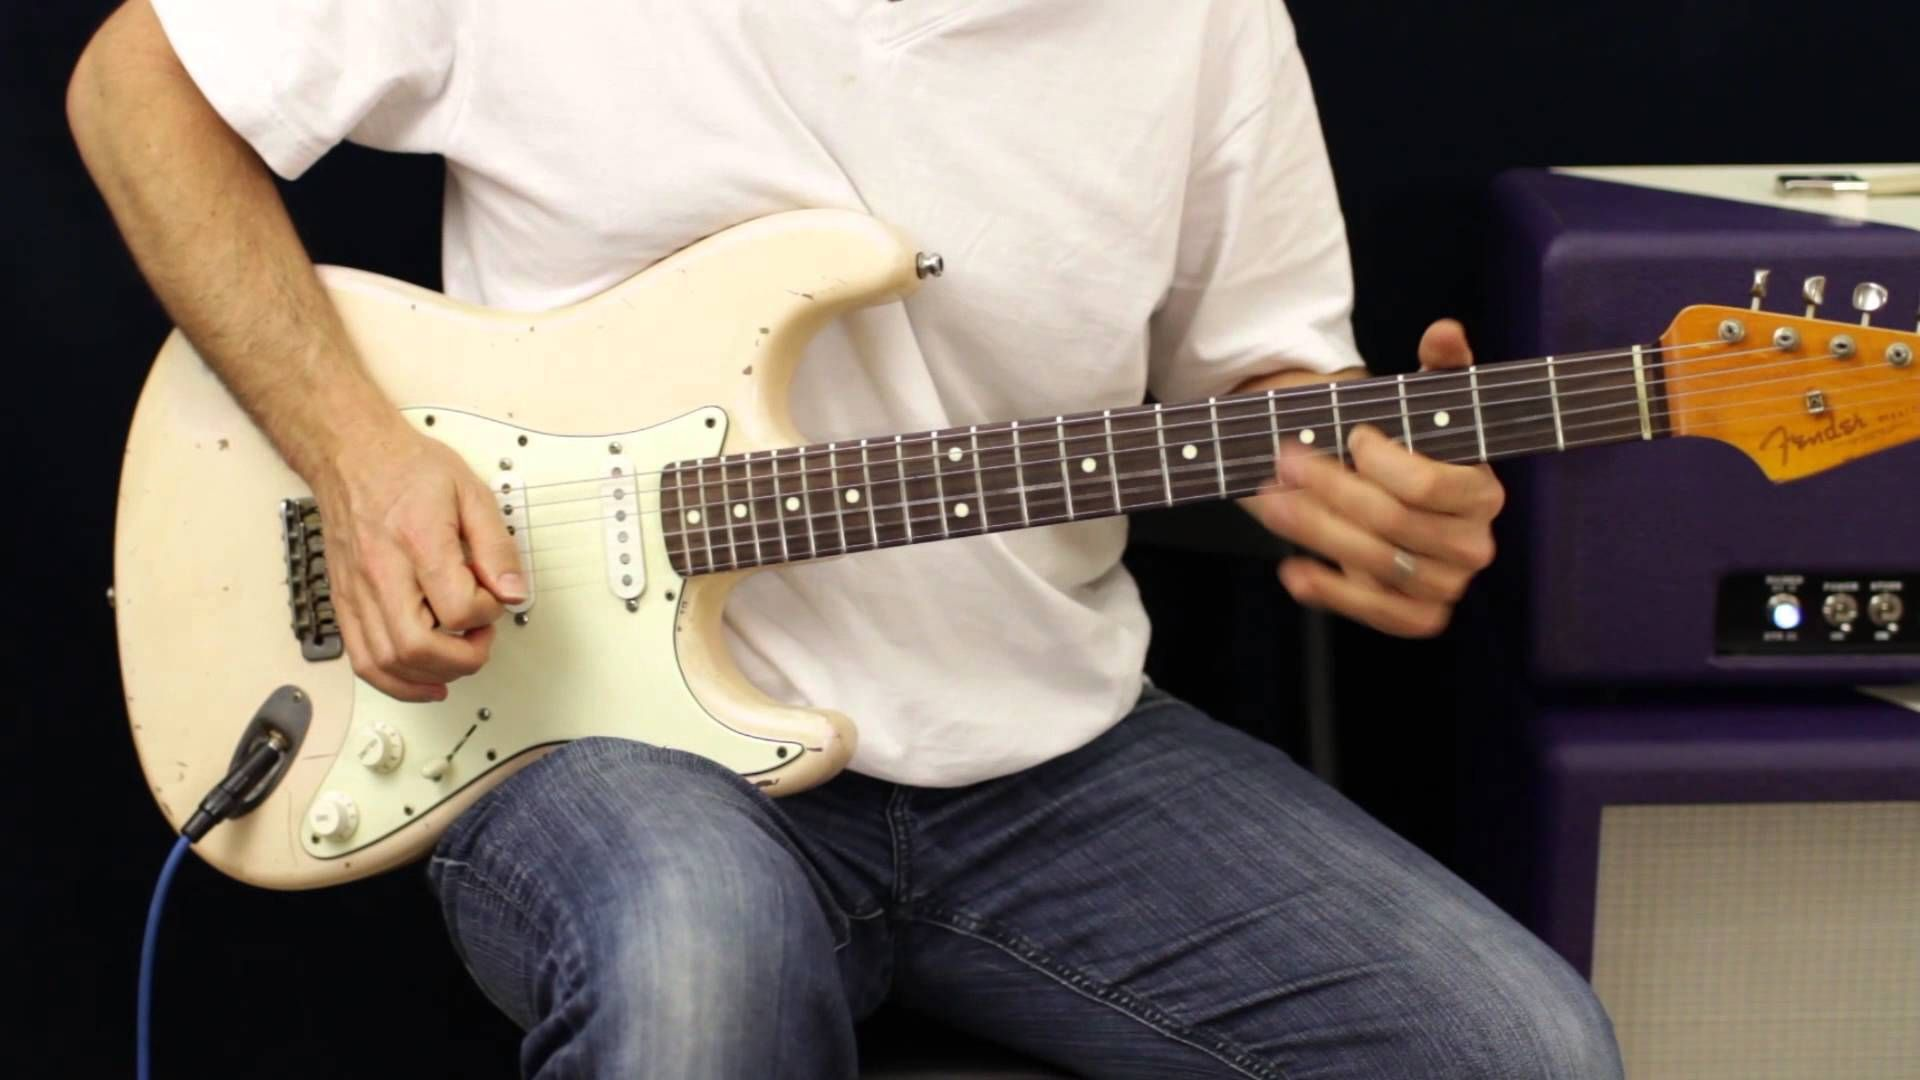 How To Play Star Spangled Banner National Anthem Guitar Lesson Guitar Lessons Guitar Star Spangled Banner